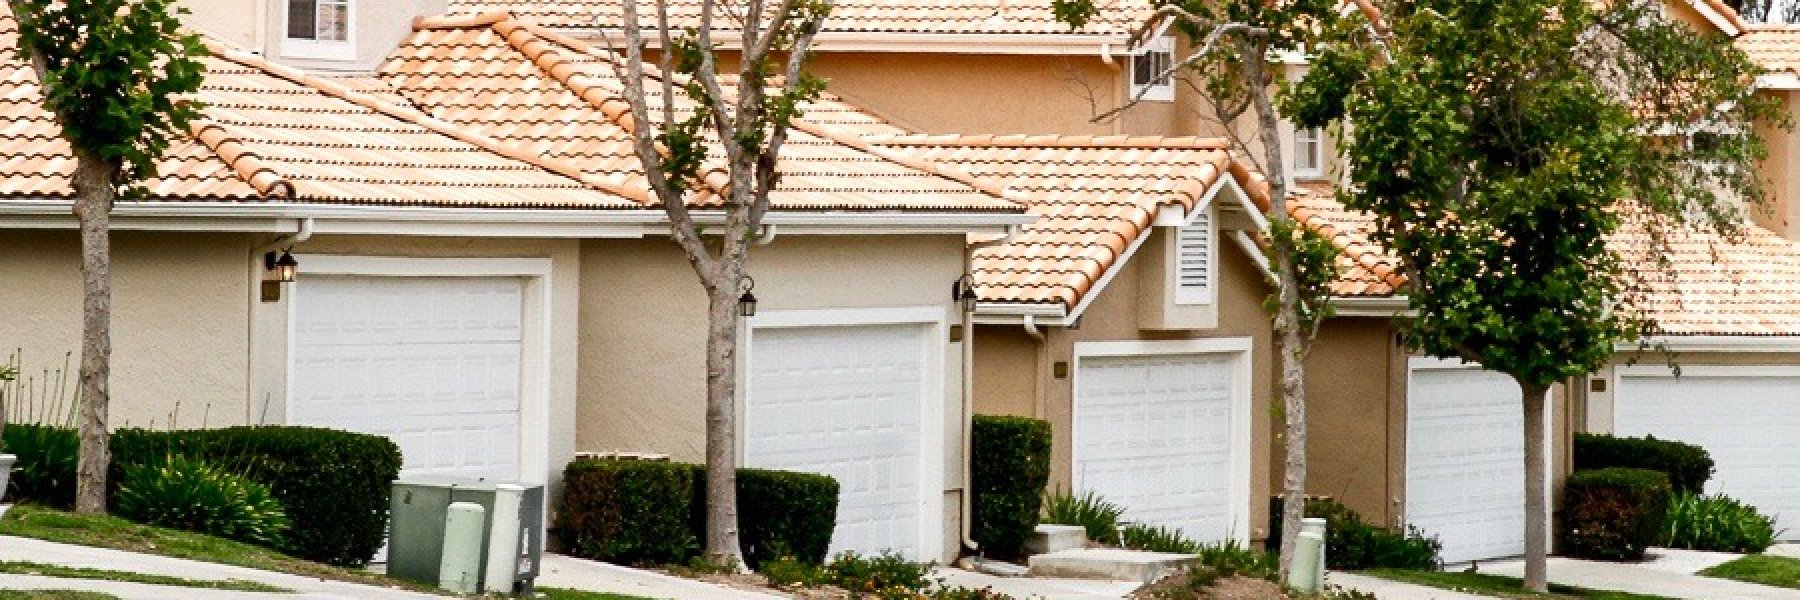 Tierra Del Sol is a community of attached homes in Rancho Bernardo California